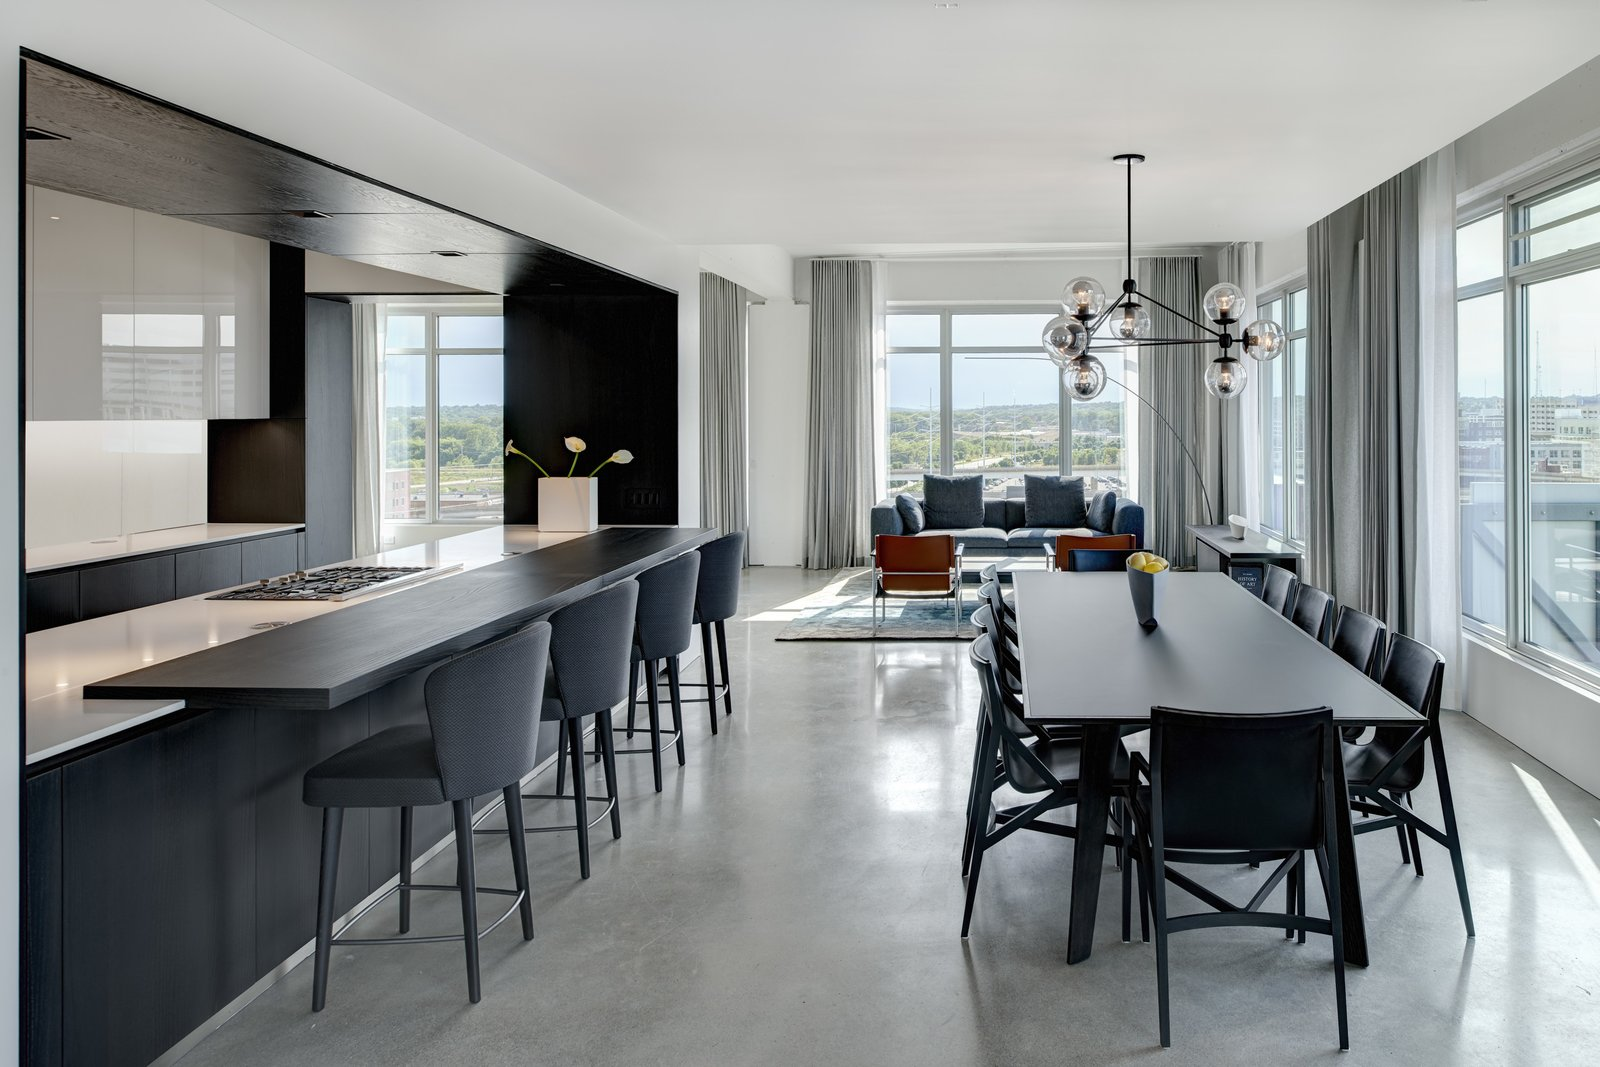 Dining Room, Chair, Table, Ceiling Lighting, Pendant Lighting, and Concrete Floor Social spaces are held to the perimeter to access expansive panoramic views.  Whiteline Residence by Neumann Monson Architects